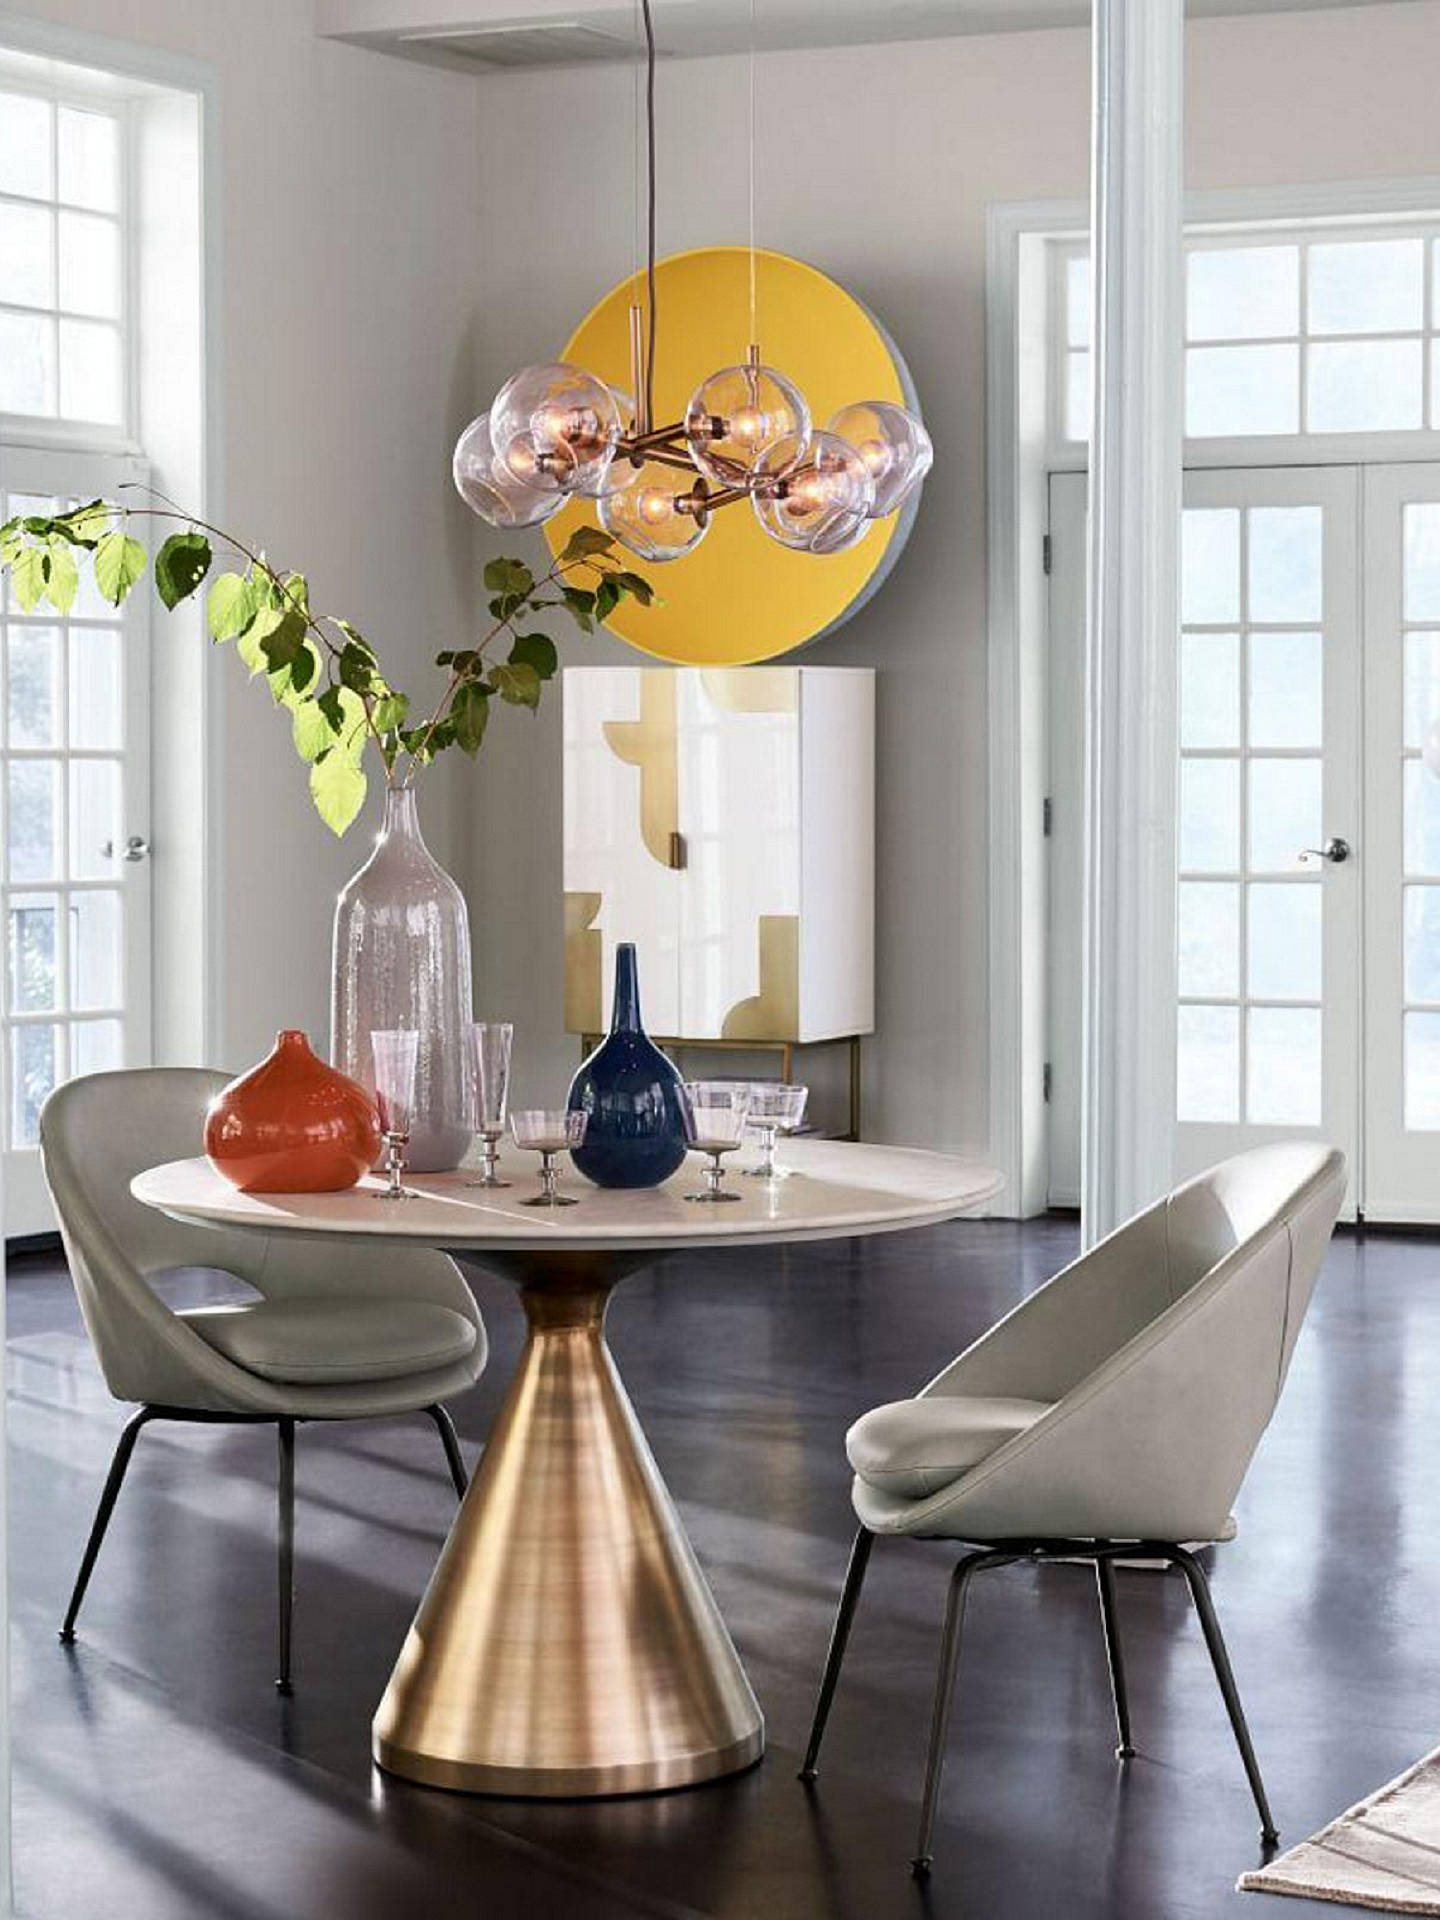 west elm dining room | west elm Silhouette Marble 4 Seater Pedestal Dining Table ...